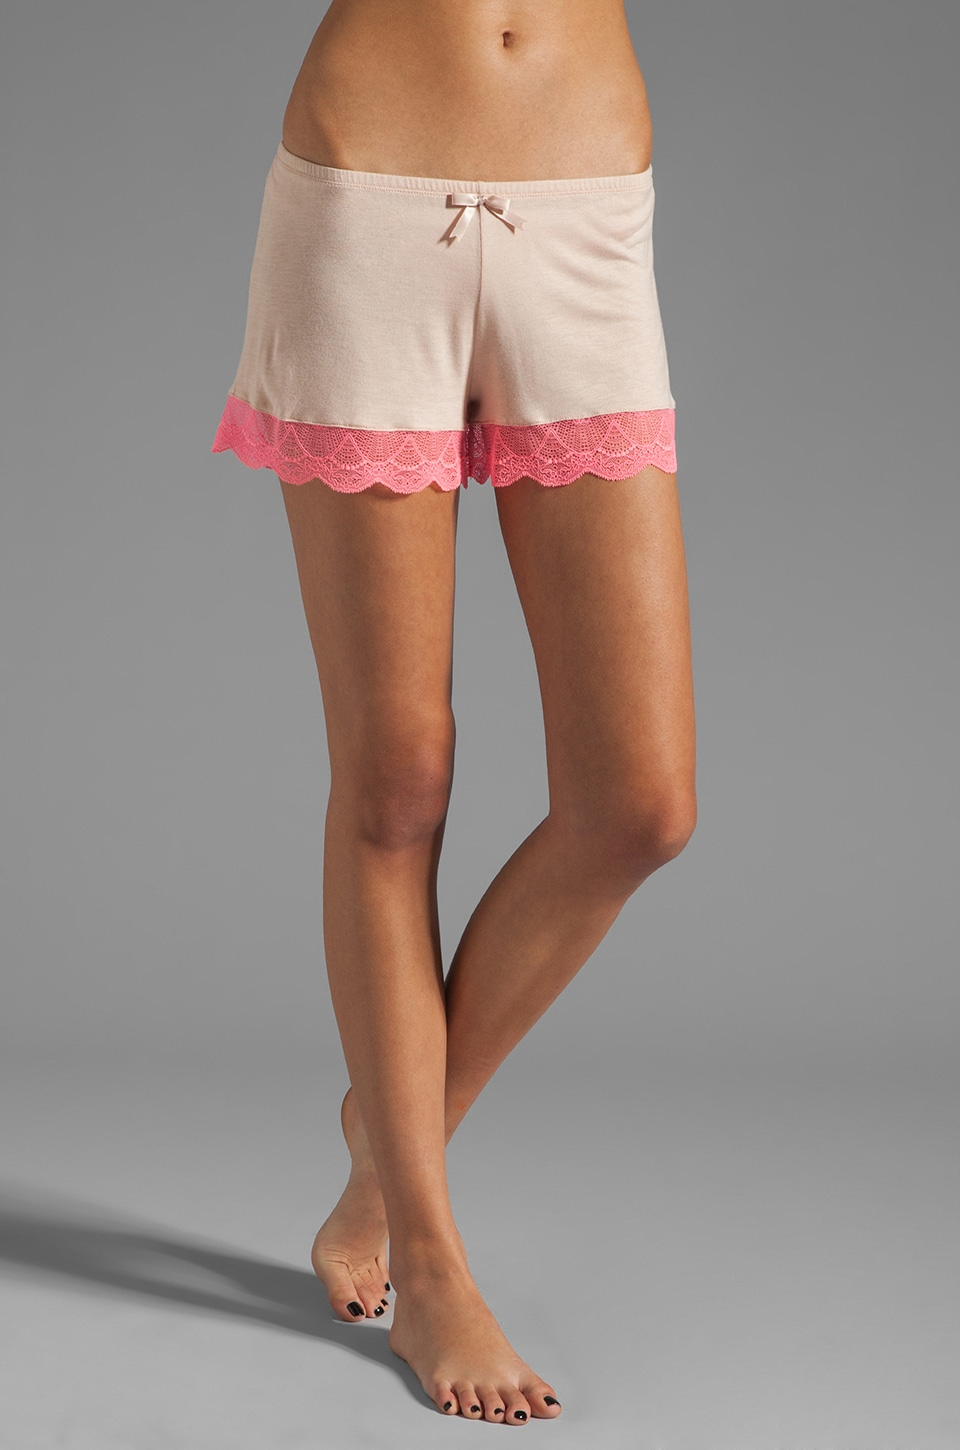 eberjey Theodora Shorts in Blush/Pink Glow